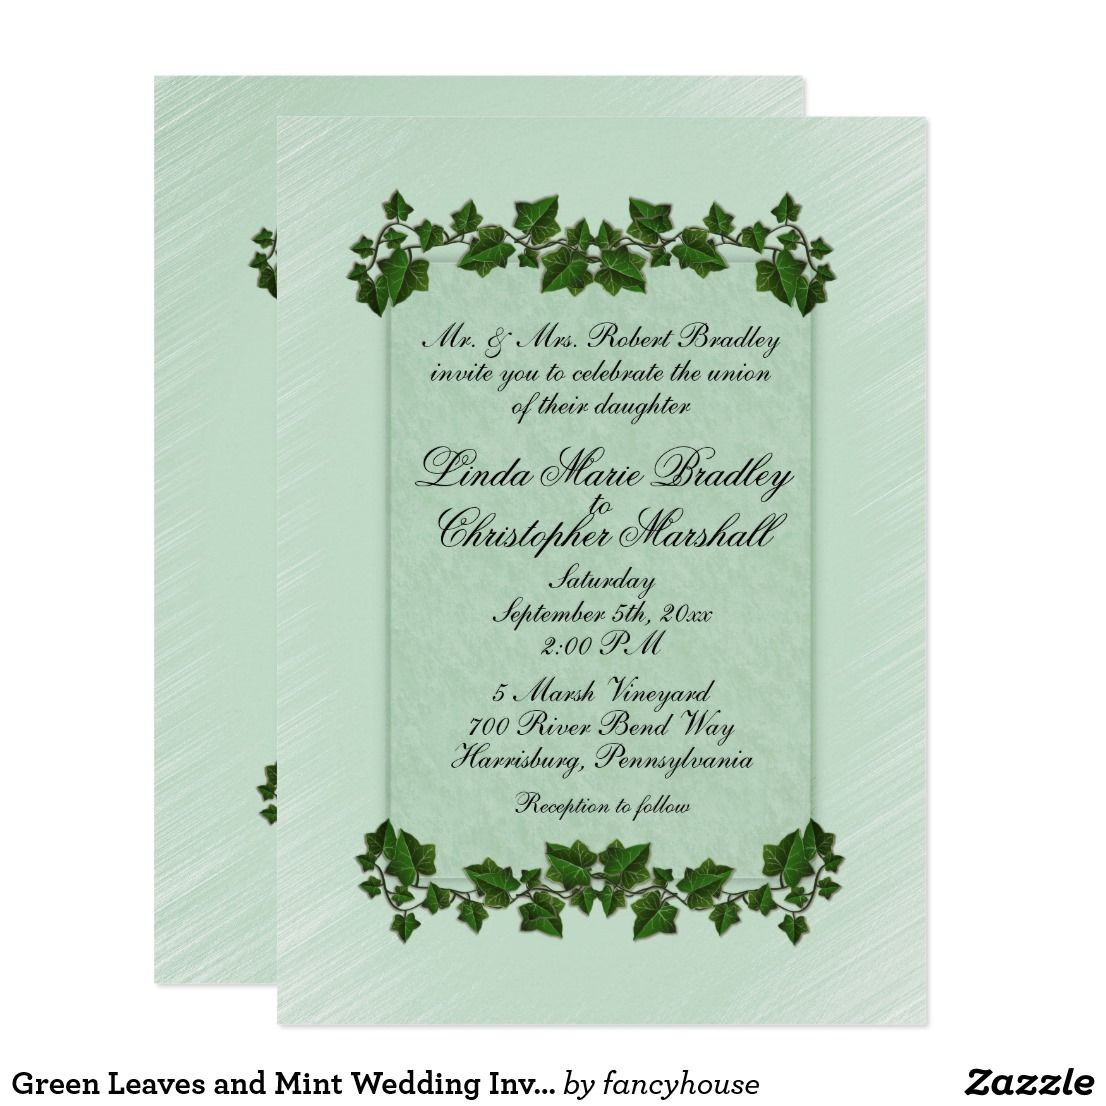 Green Leaves and Mint Wedding Invitation